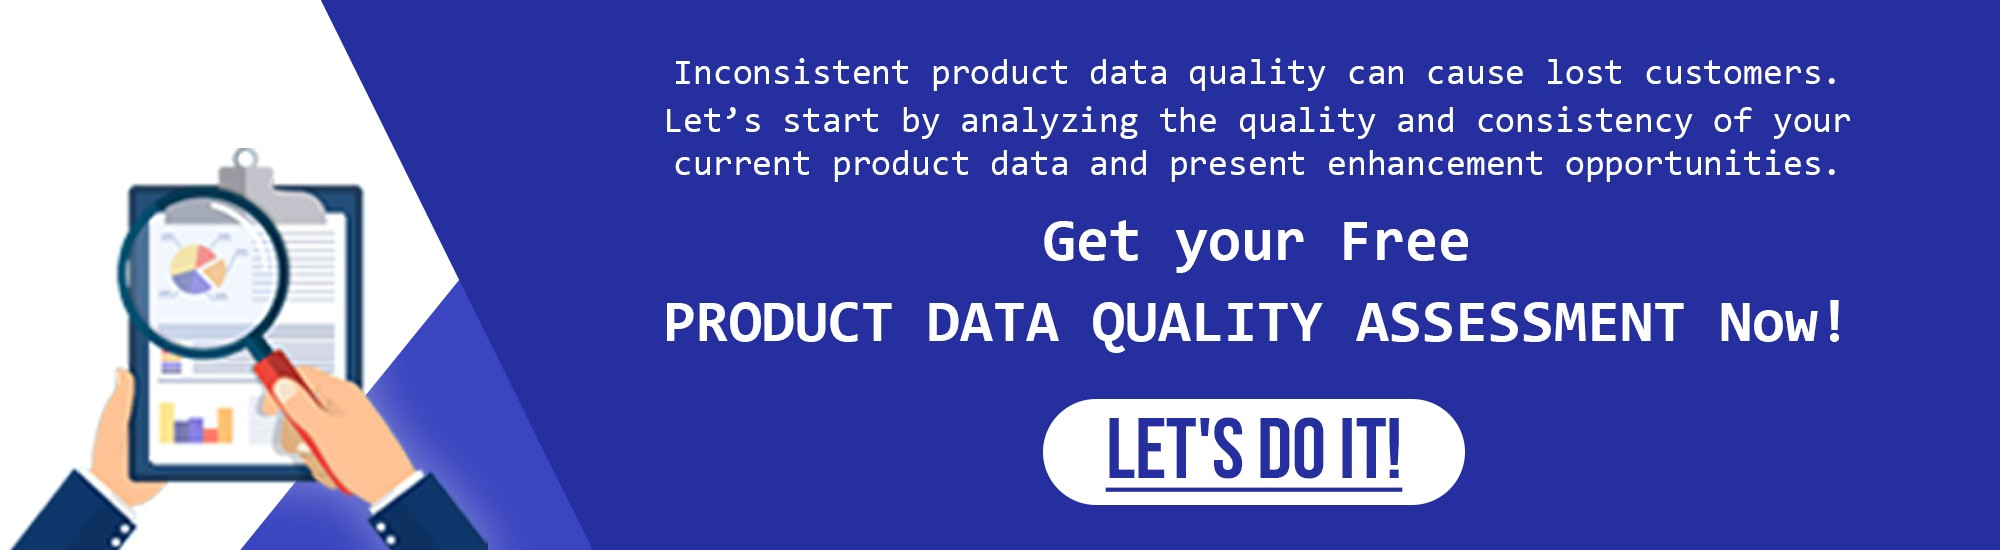 Product Data Quality Assessment